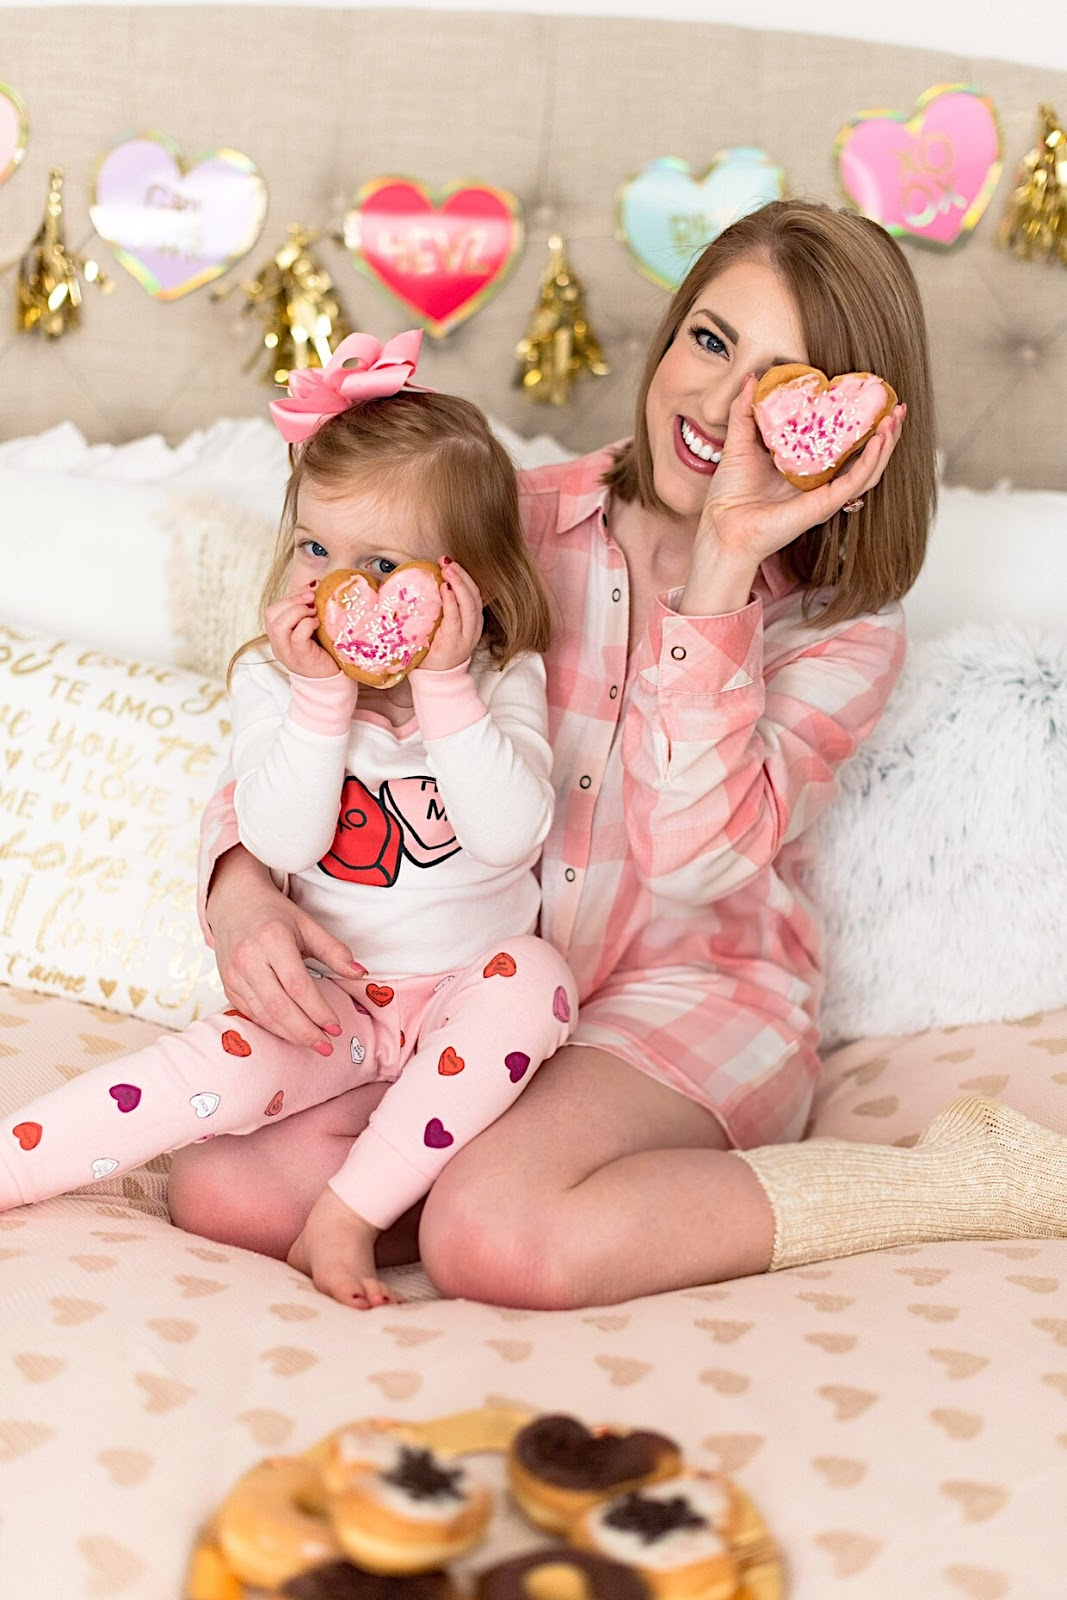 Mommy and Me Valentine Pajamas - Click through to see more on Something Delightful Blog